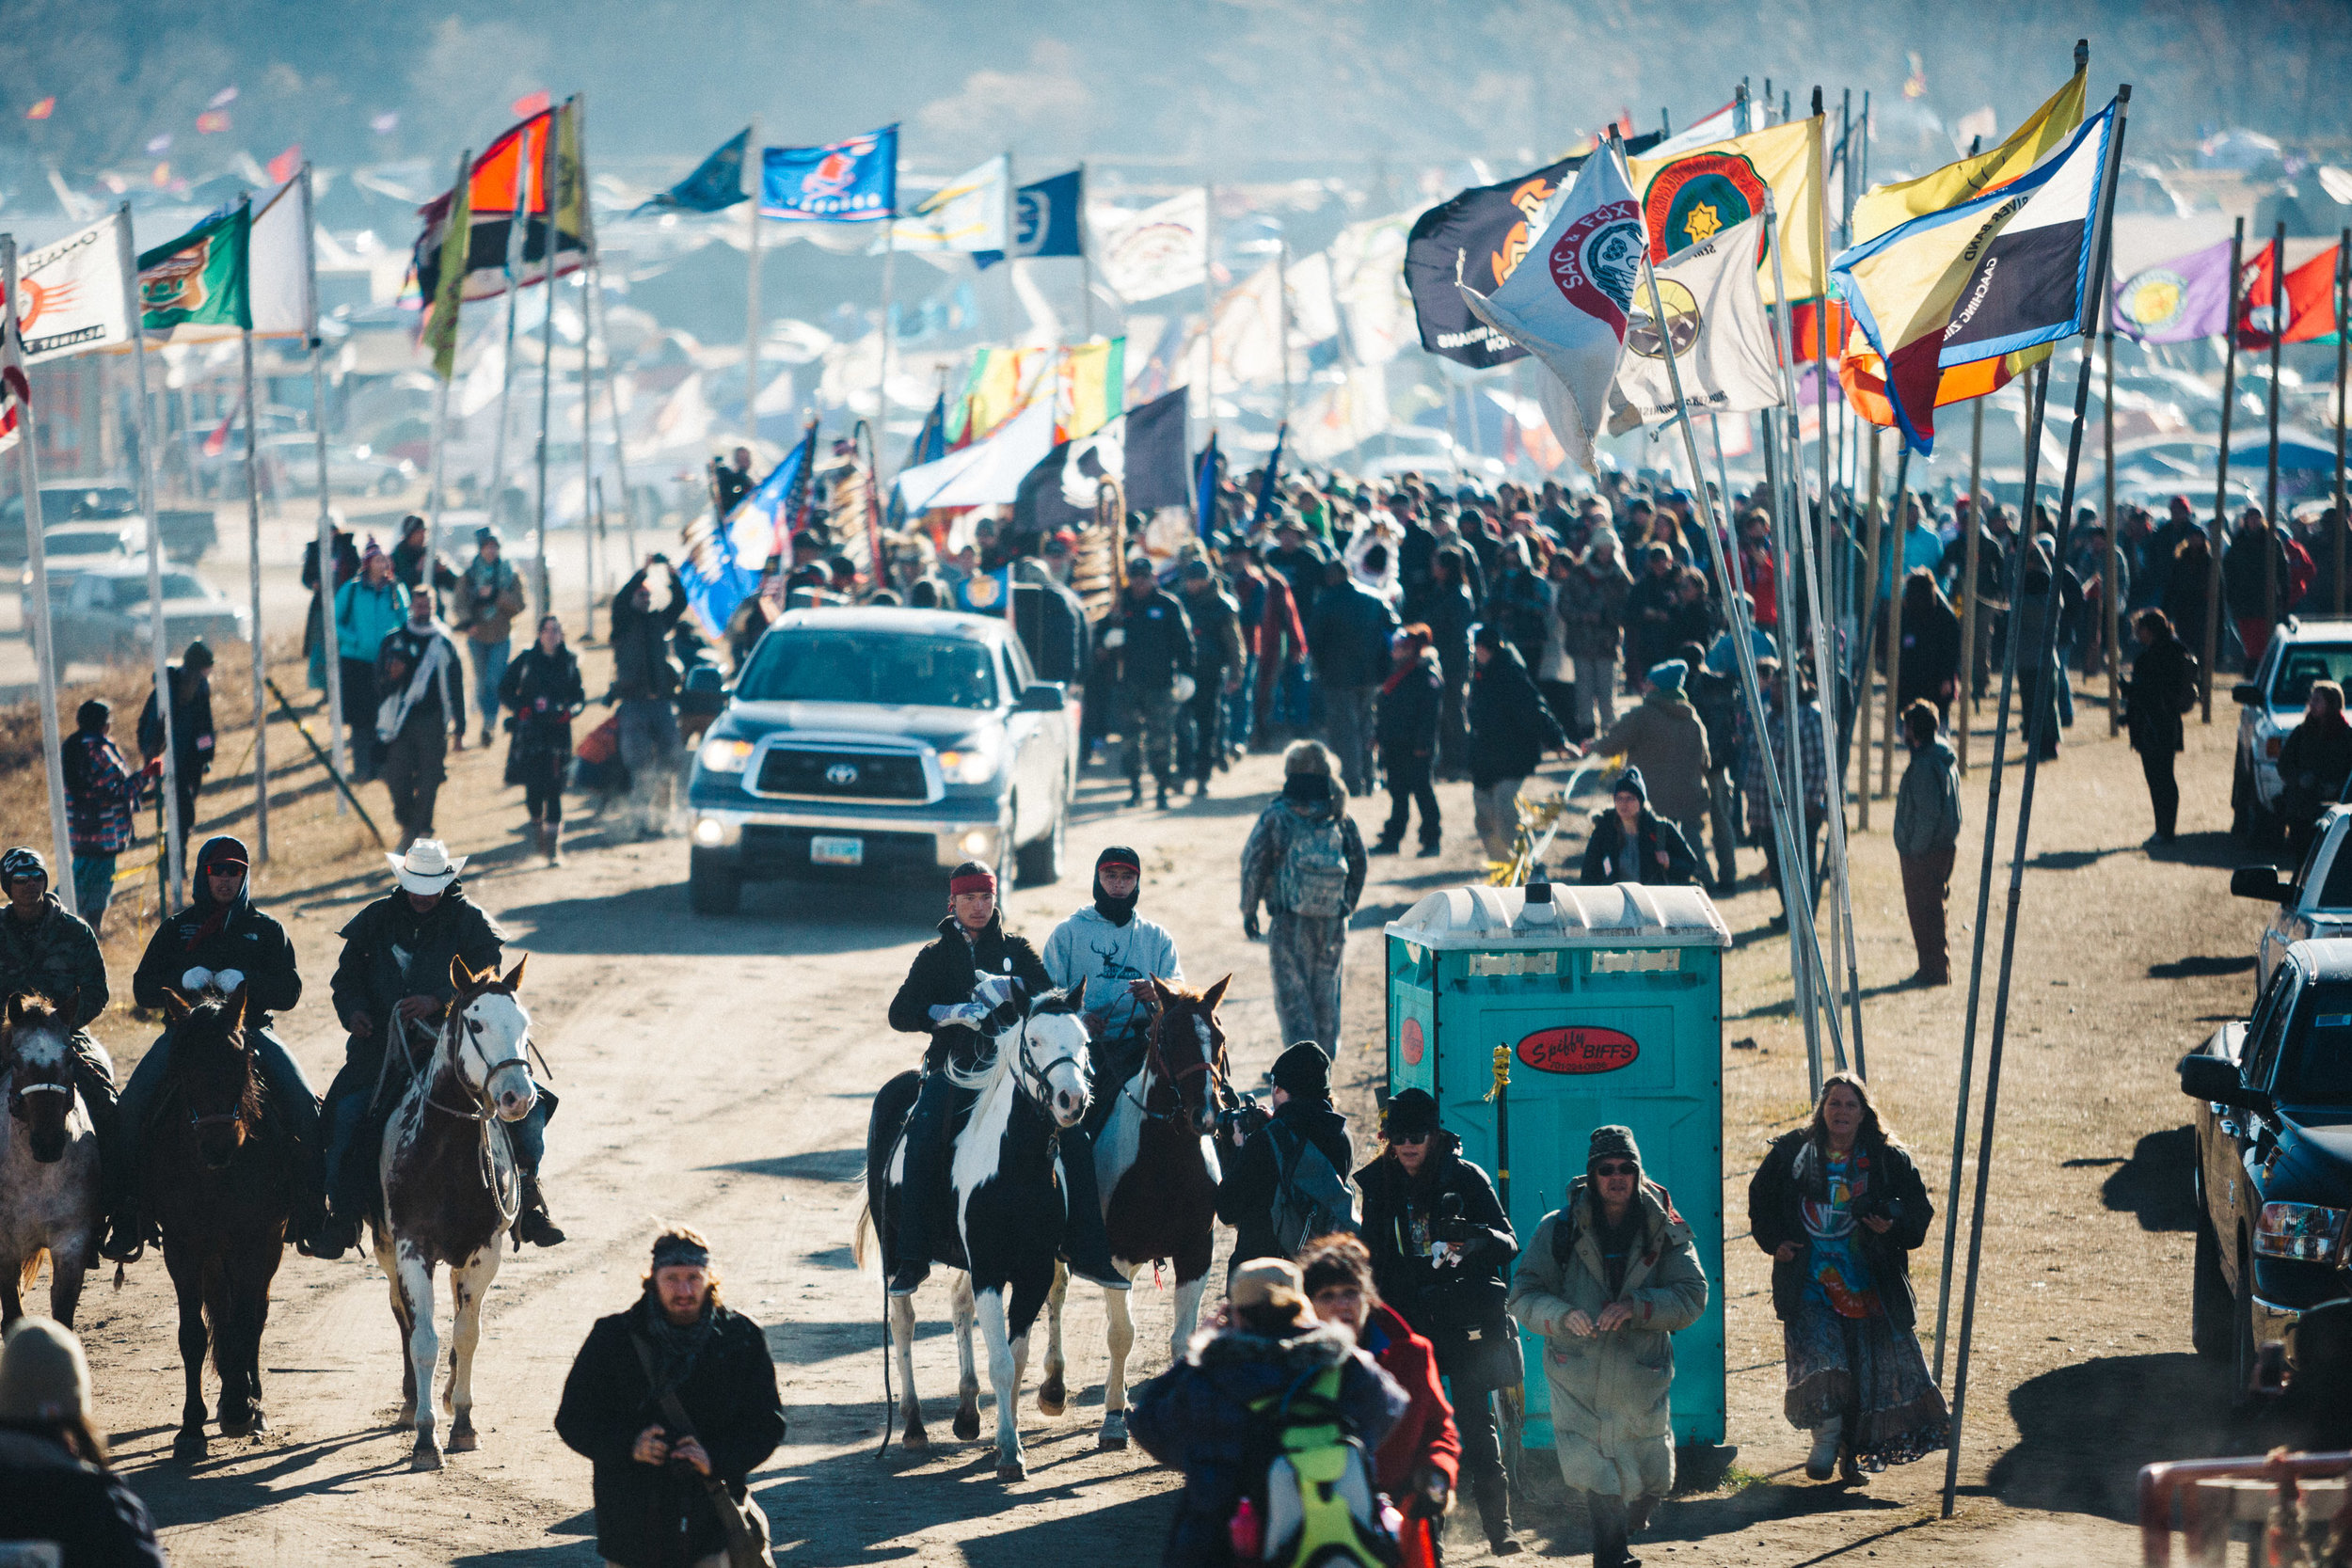 Veteran's Day March at Standing Rock